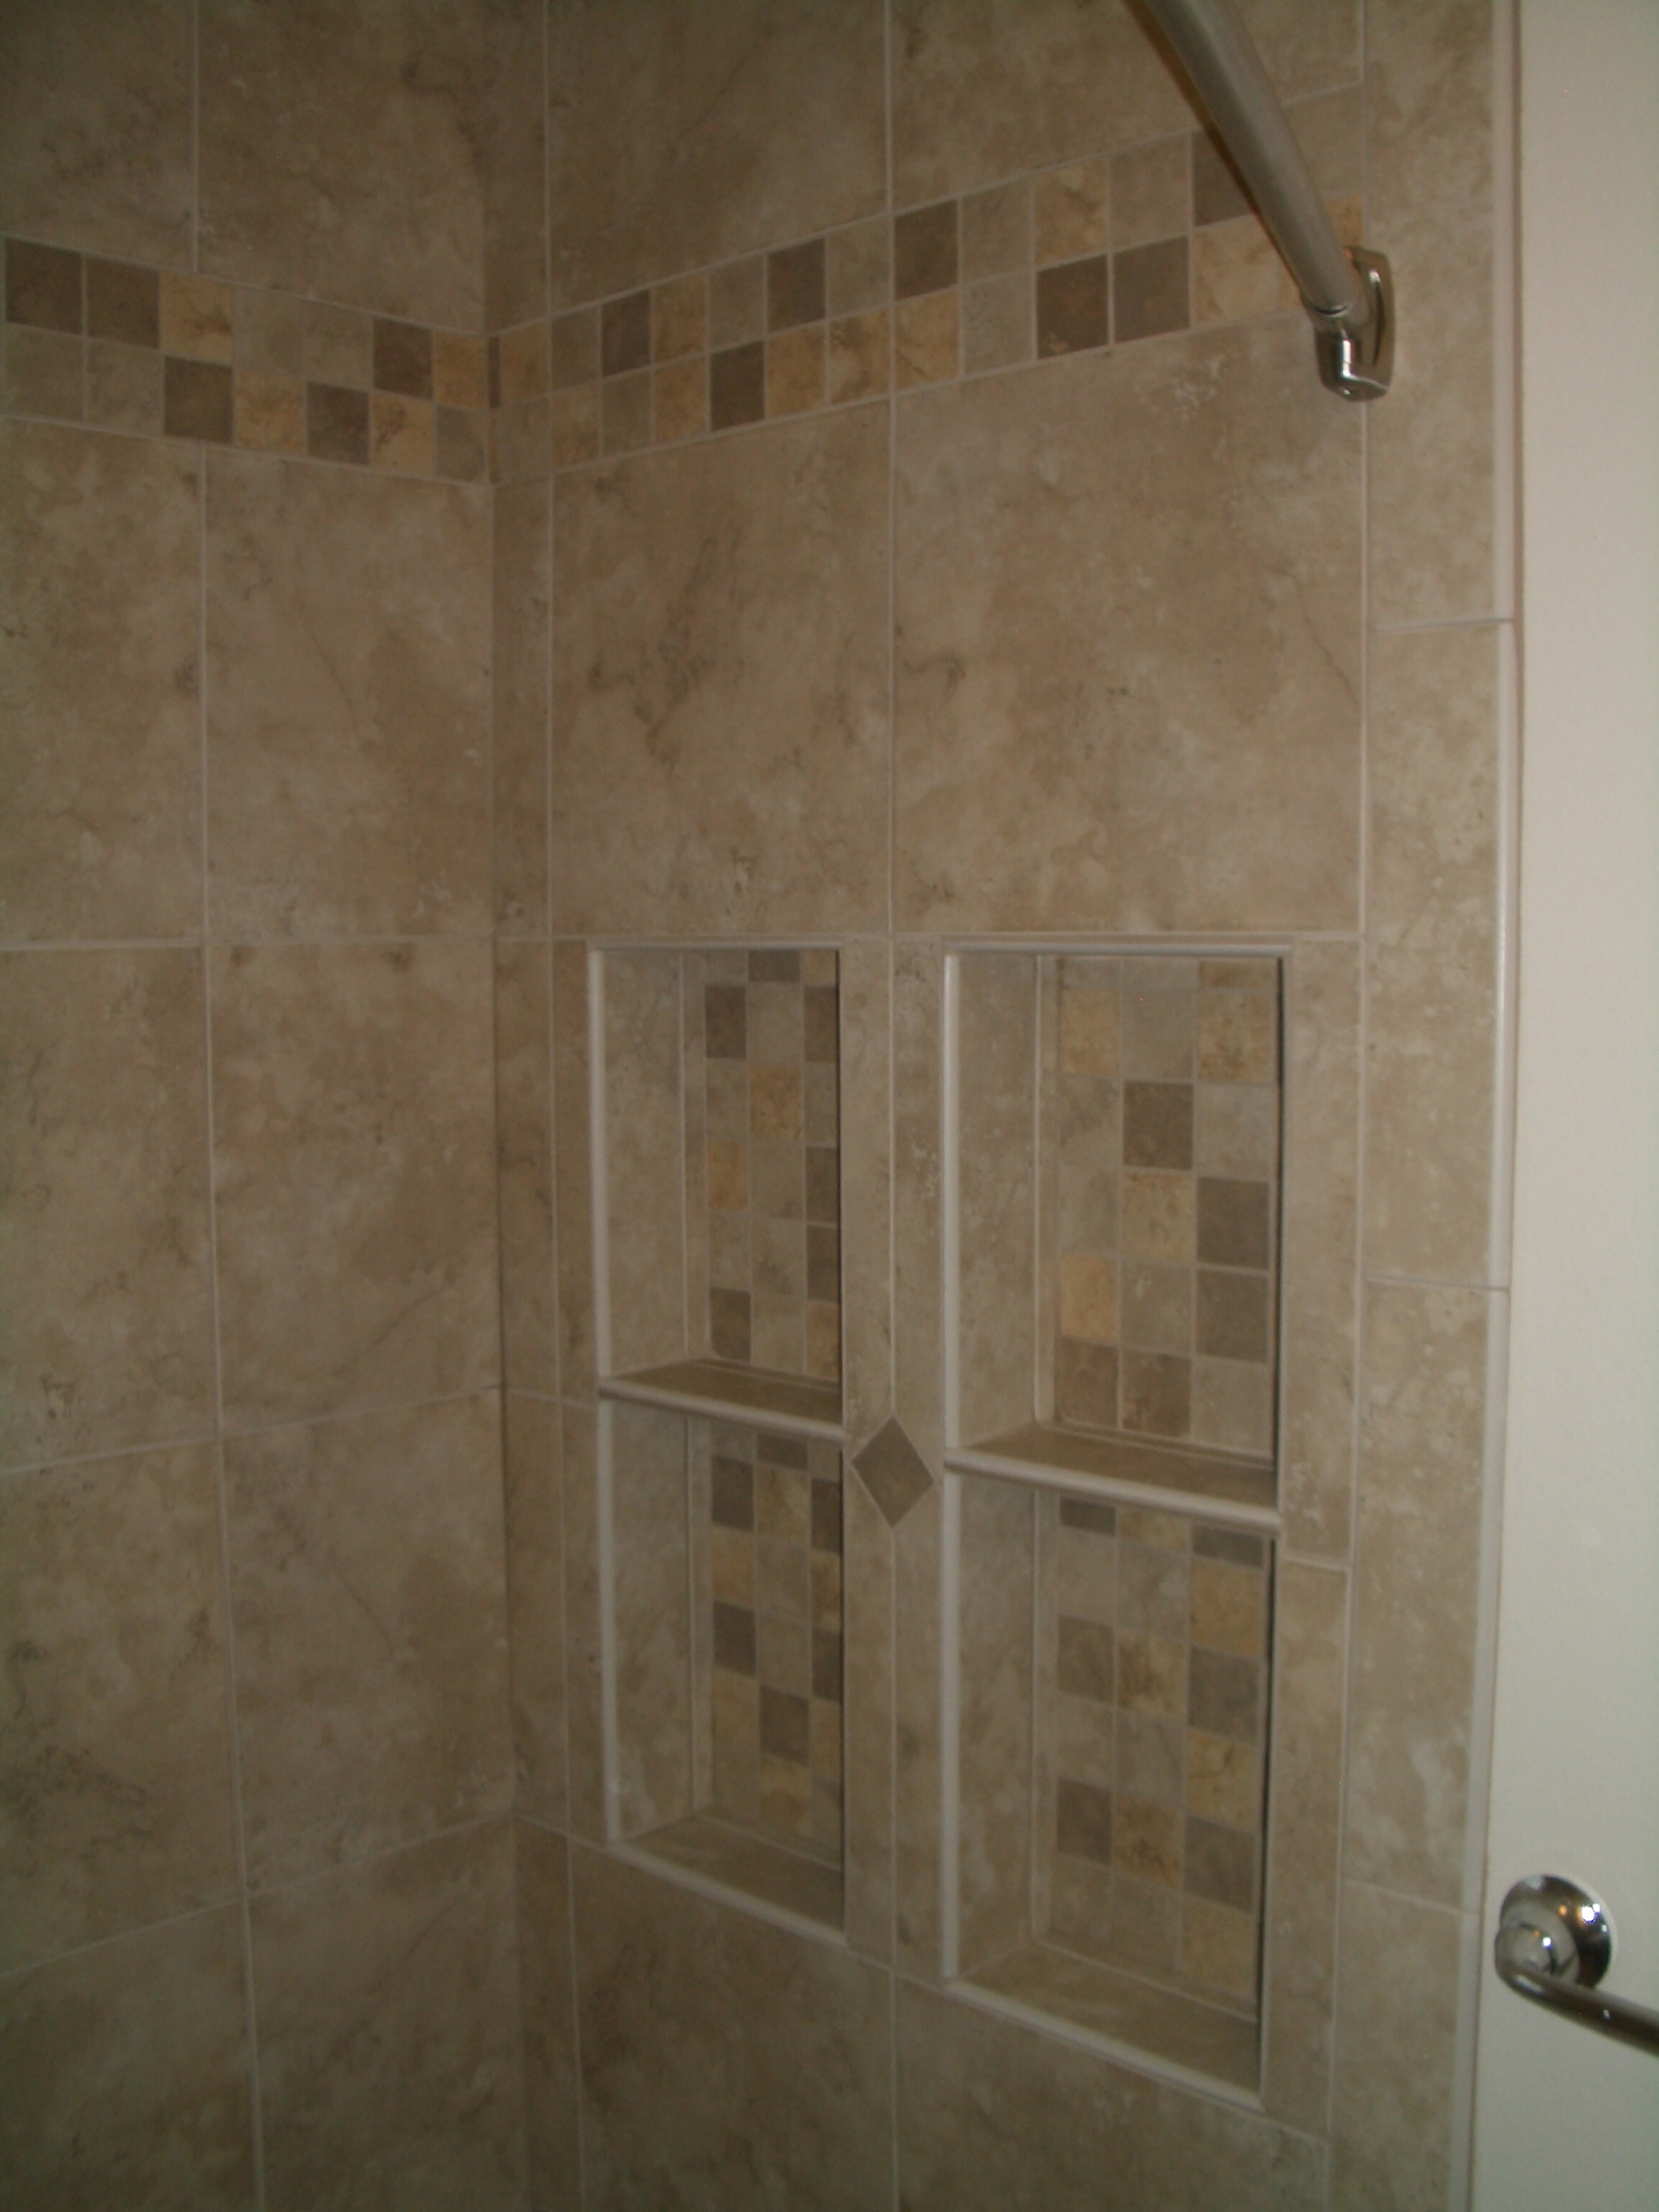 drywall to backerboard transition in tiled showers. Black Bedroom Furniture Sets. Home Design Ideas